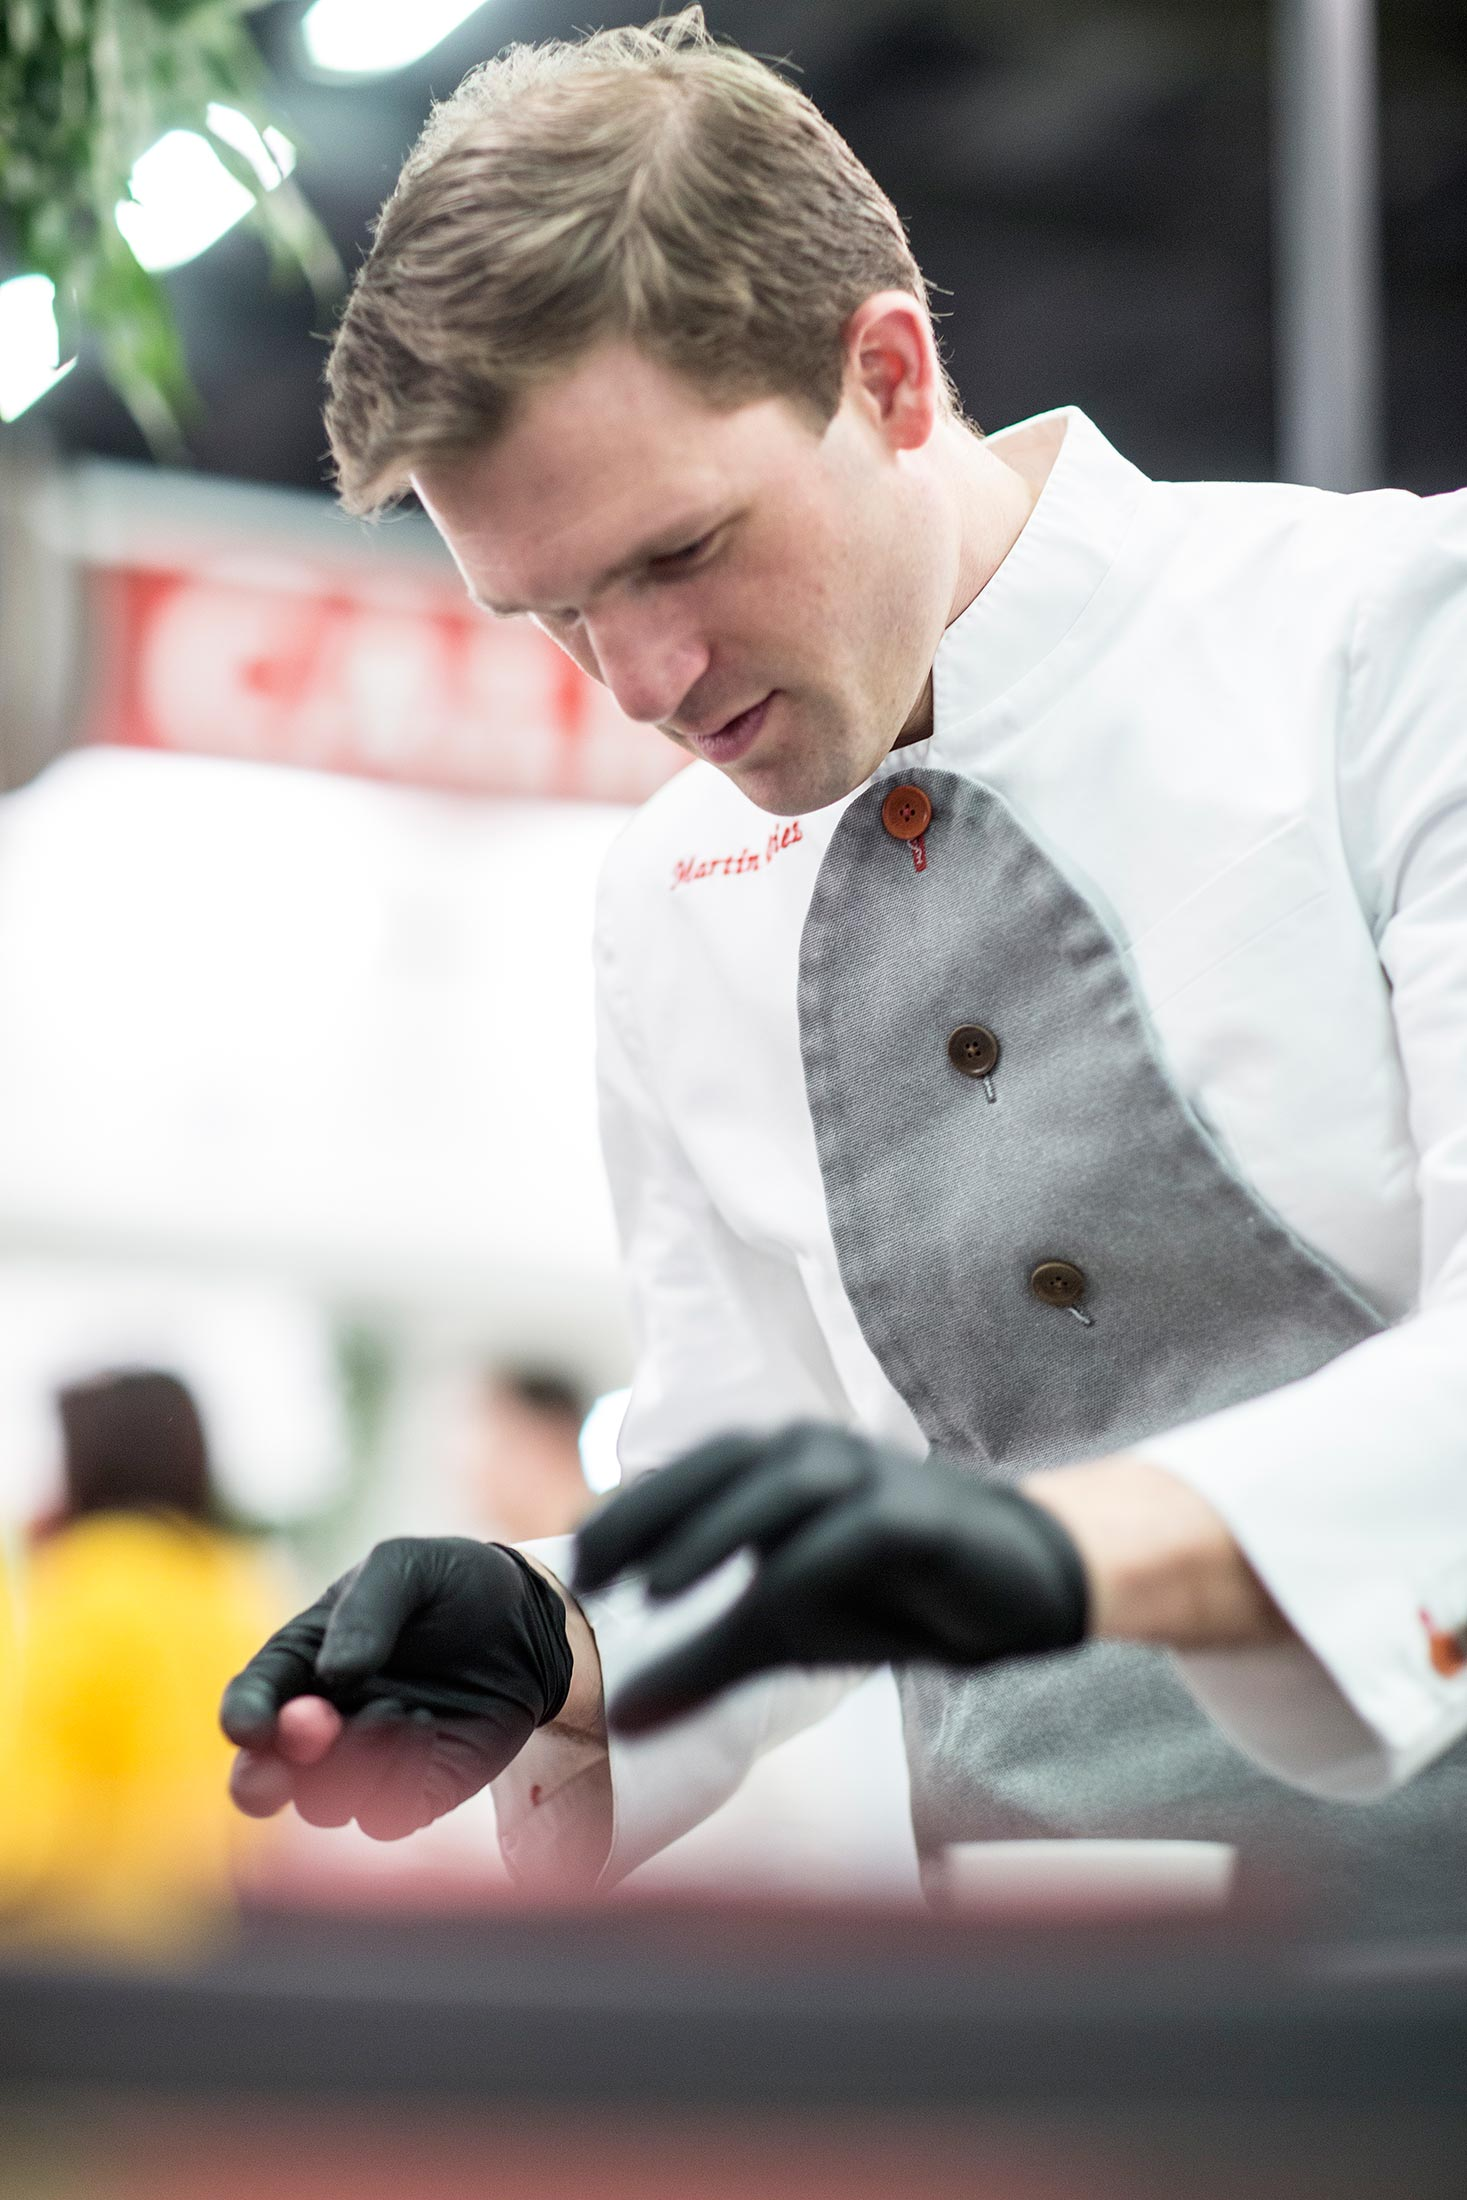 Chef Martín Diez at work